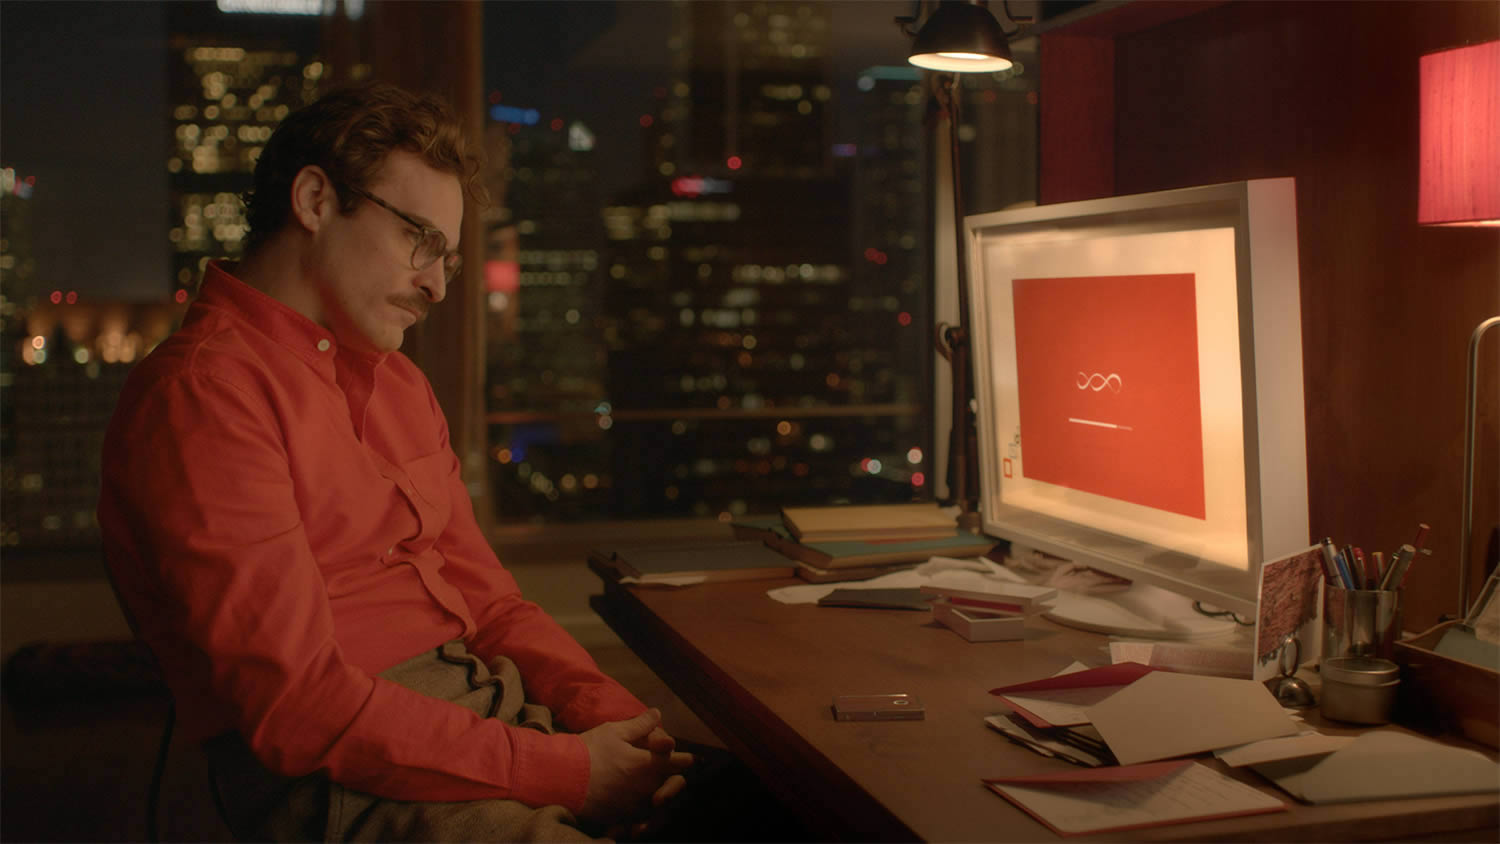 joaquin phoenix looking at the computer screen in her, movie